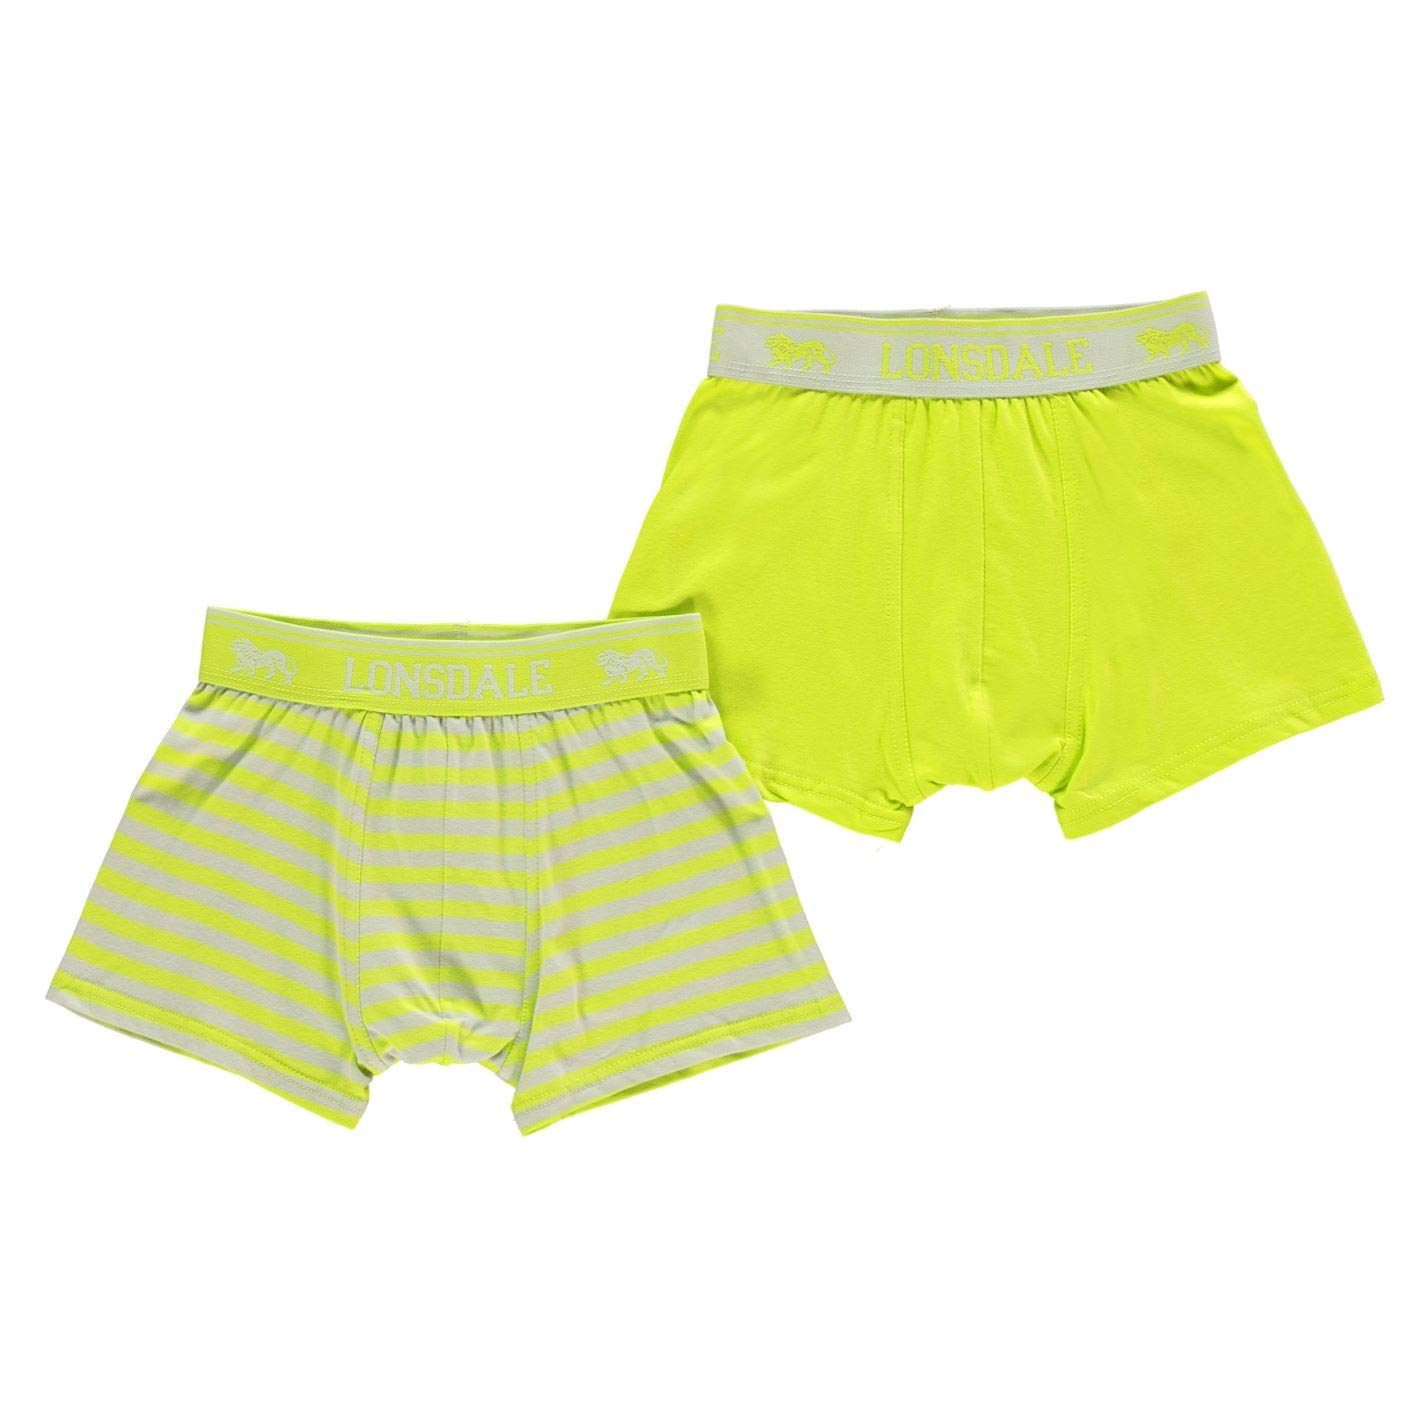 Lonsdale Kids 2 Pack Trunk Junior Boys Boxersband